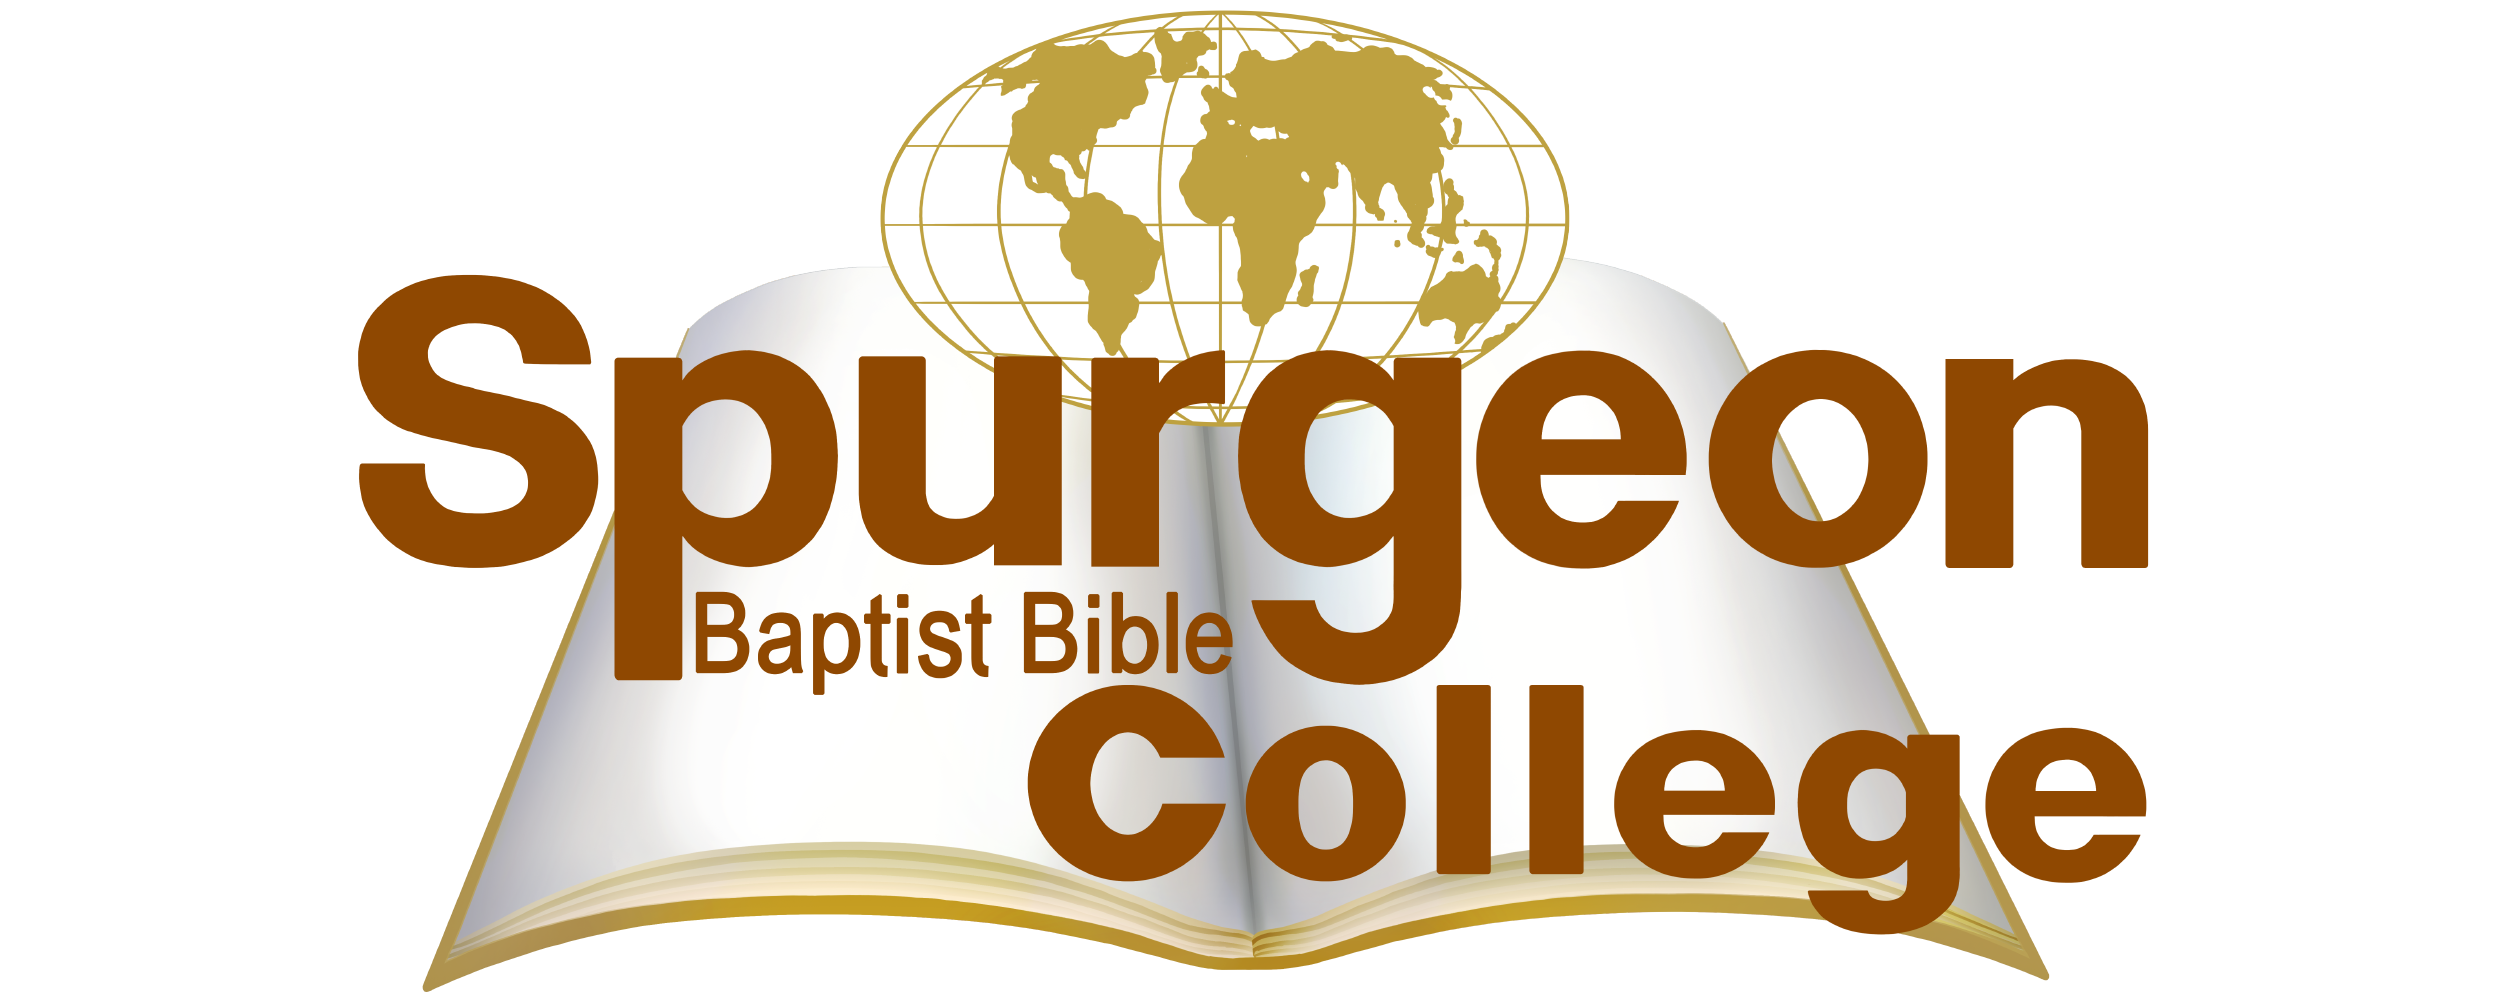 Spurgeon Baptist Bible College